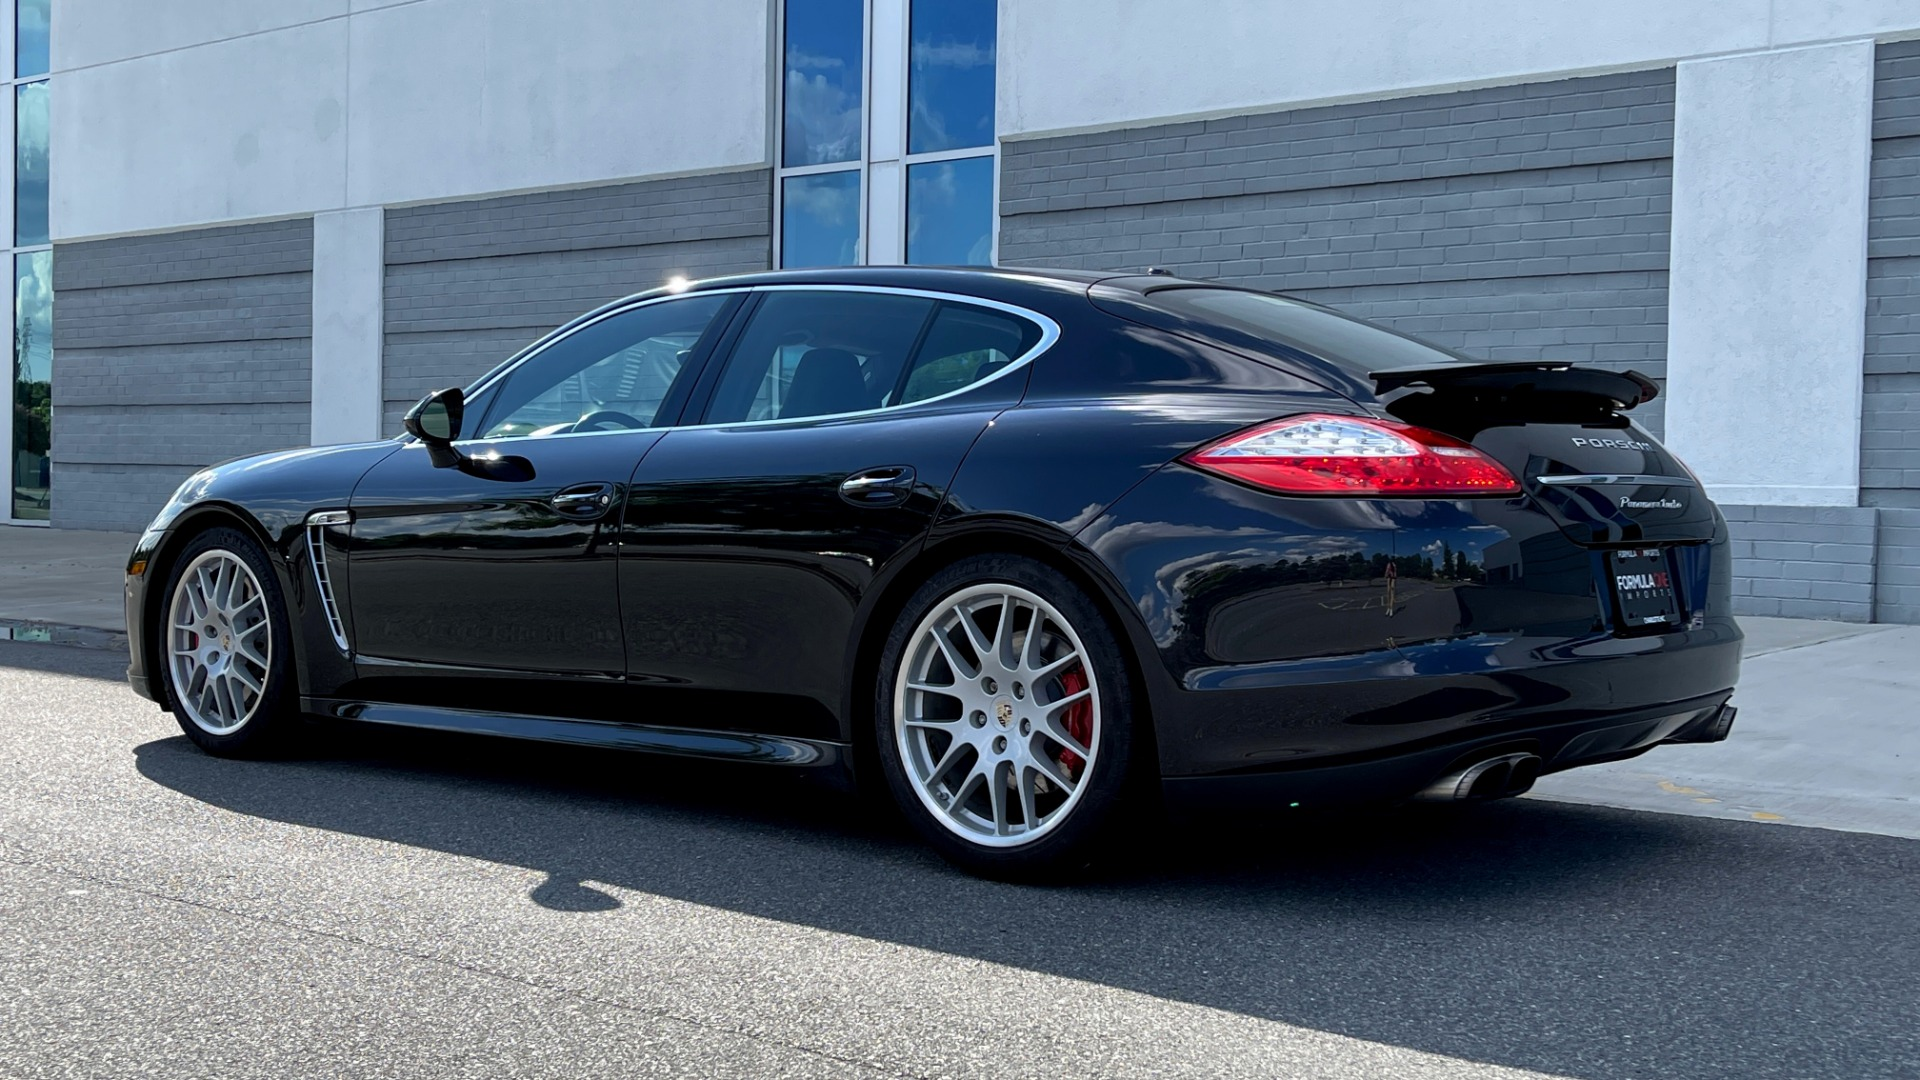 Used 2010 Porsche PANAMERA 4DR HB TURBO / SPORT CHRONO / BURMESTER / AUTO CLIMATE CONTROL for sale $40,995 at Formula Imports in Charlotte NC 28227 5